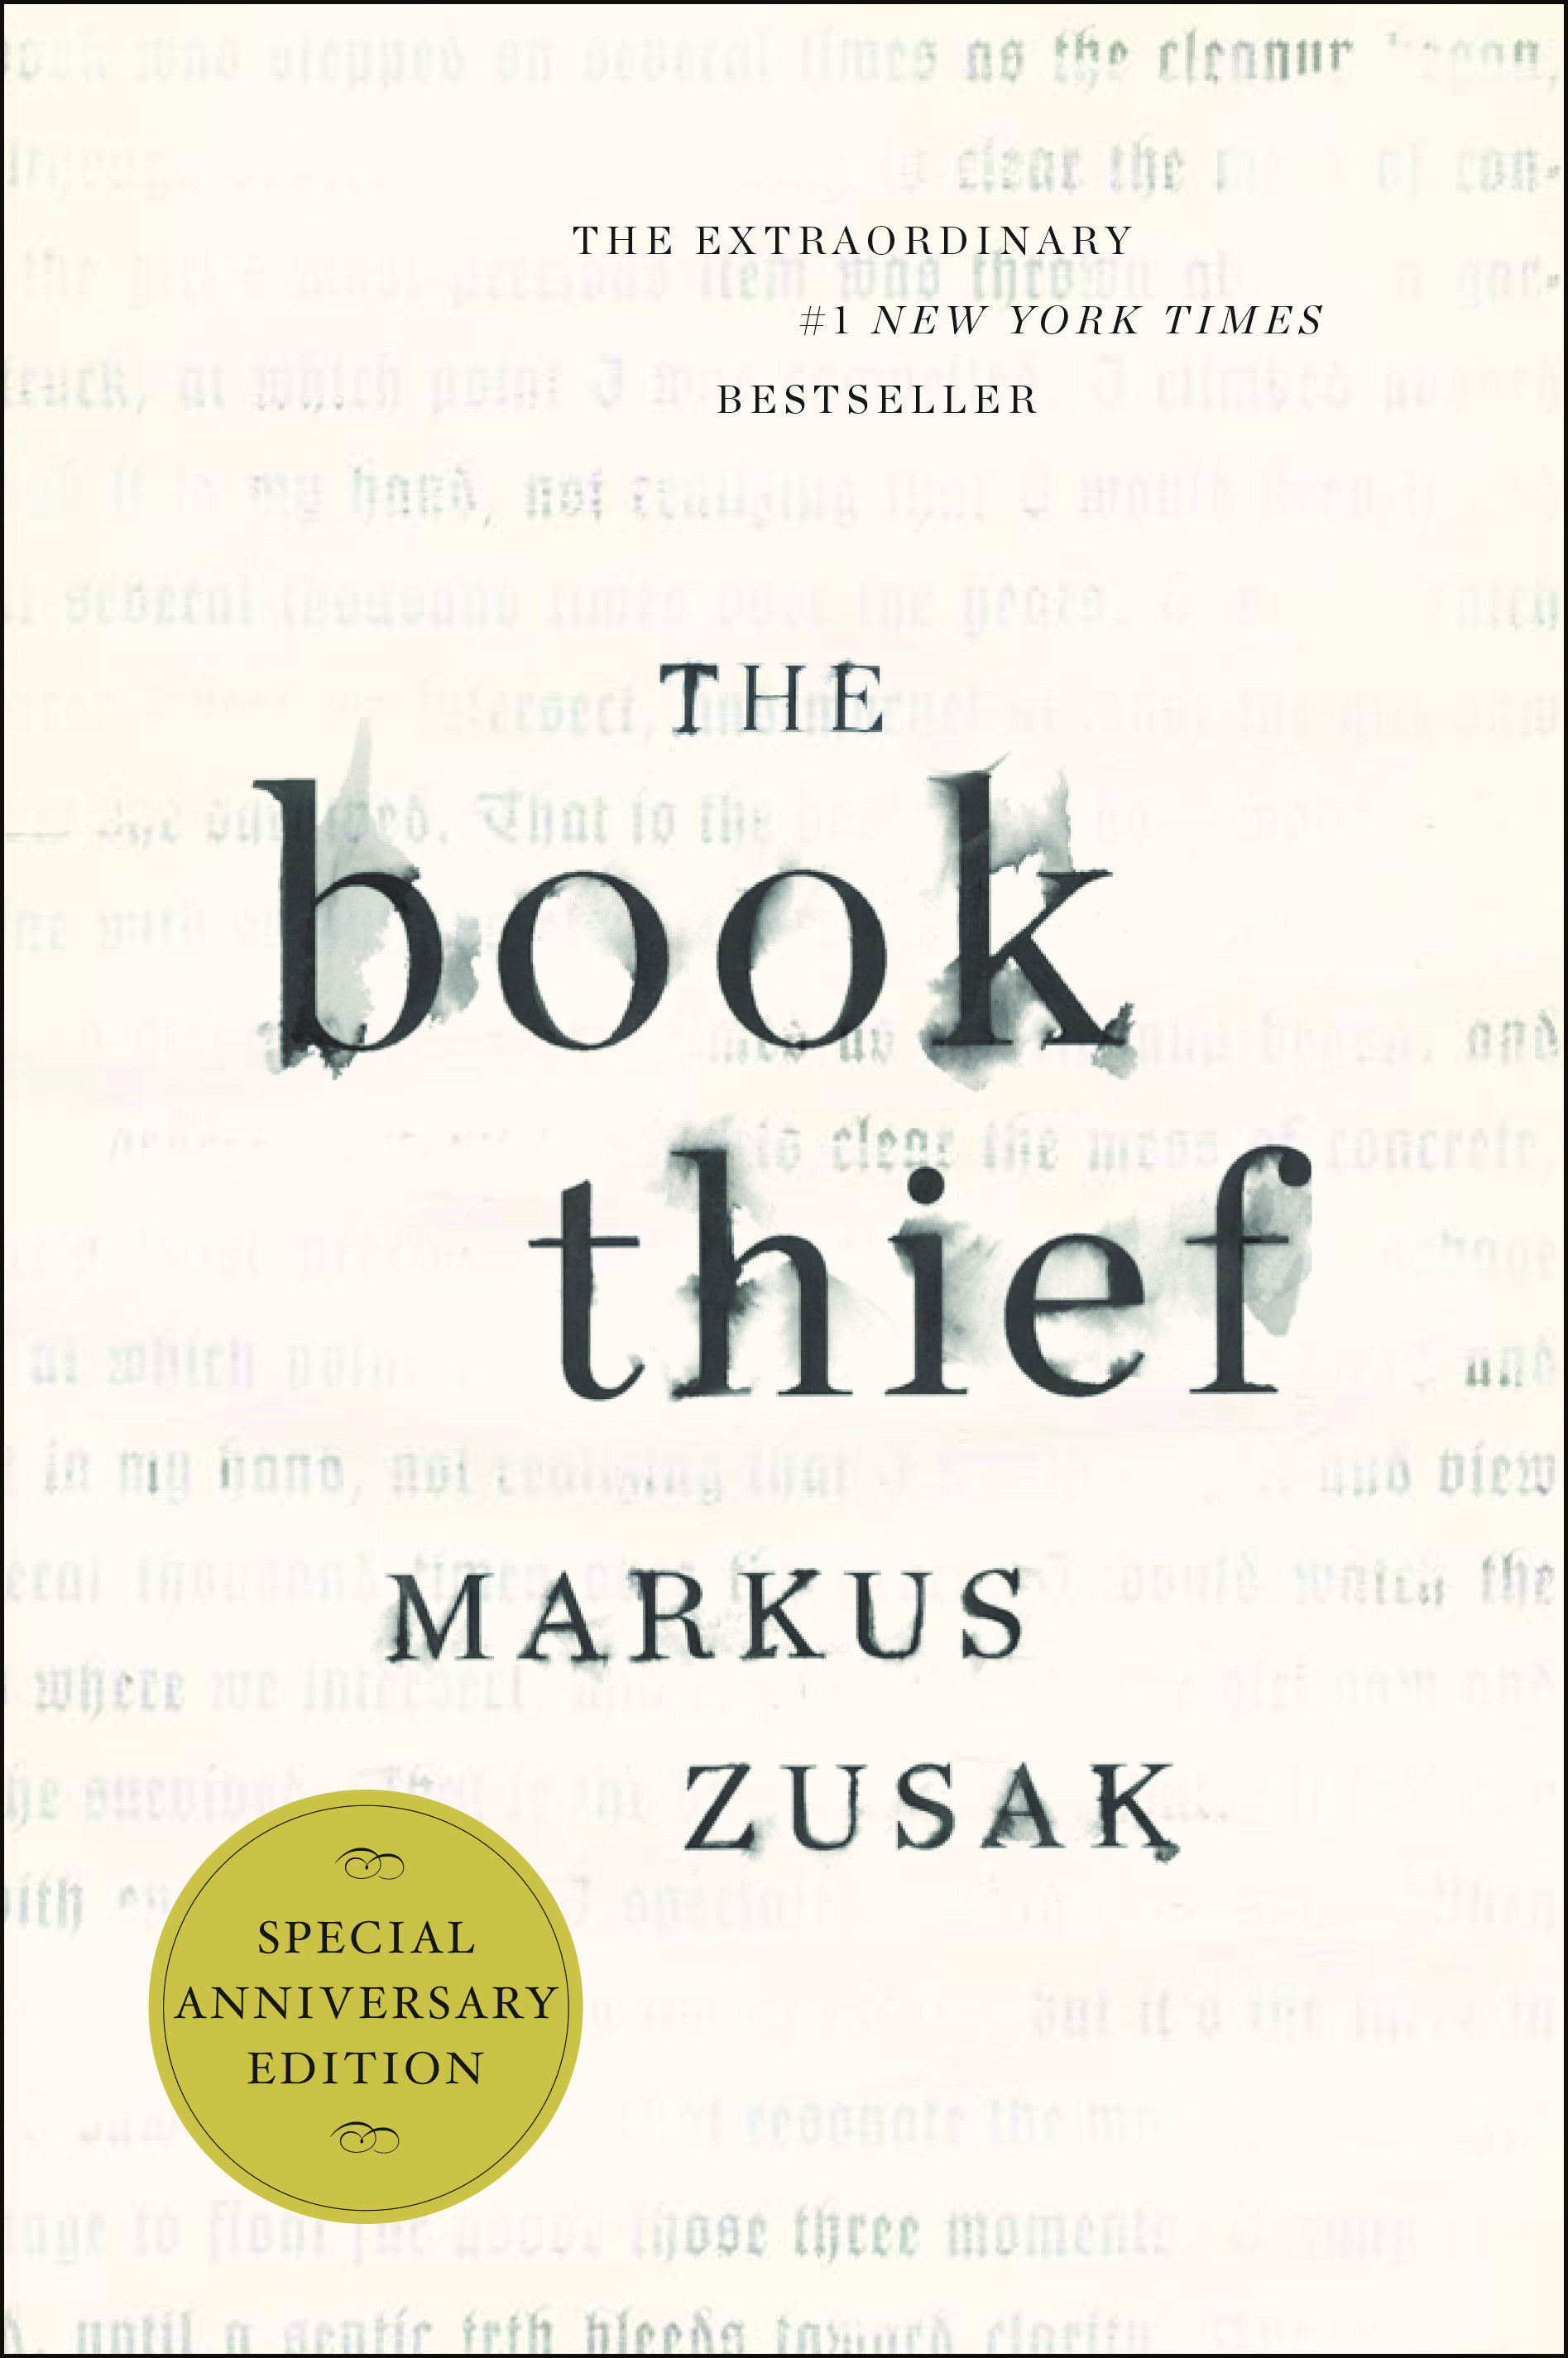 markus zusak s the book thief the th anniversary the 2016 03 21 1458569199 4561225 thebookthief10thanniversary markuszusak jpg